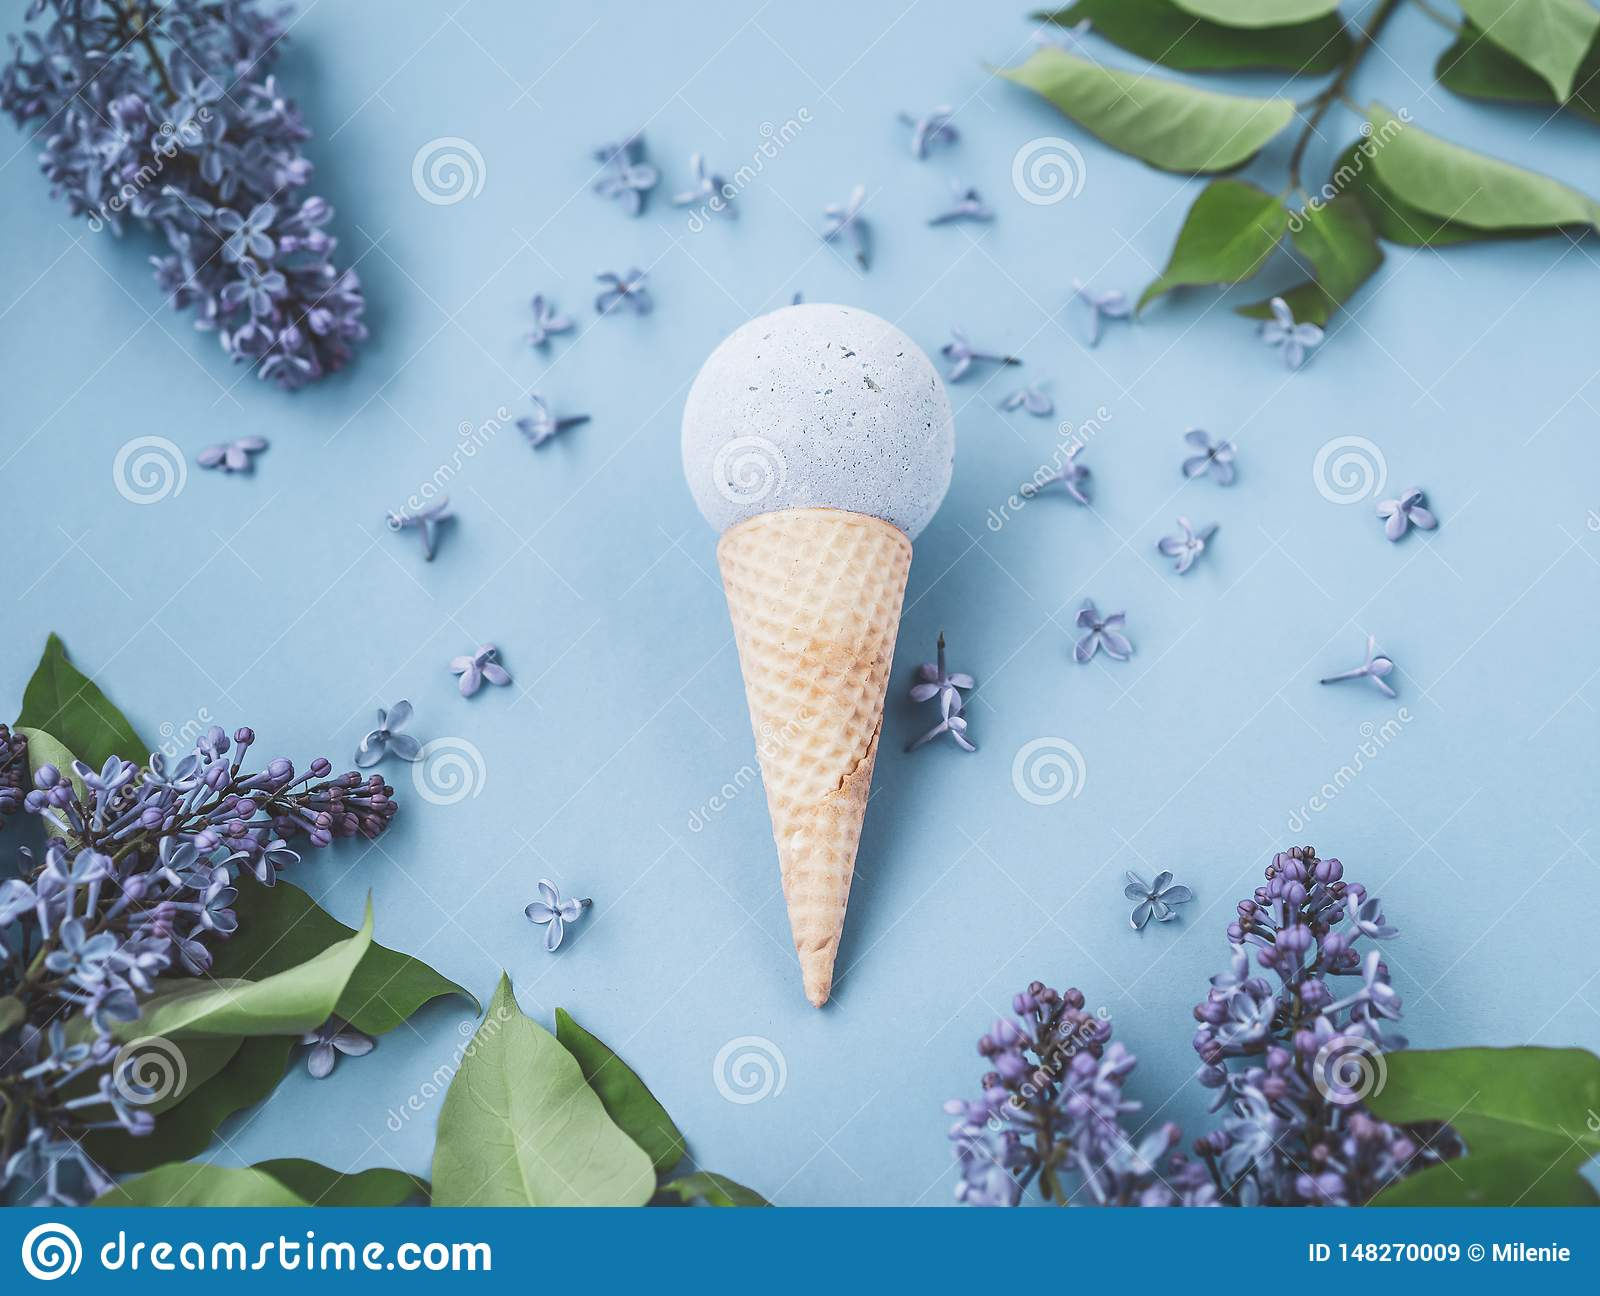 Composition of ice cream cone with bath ball on a blue background